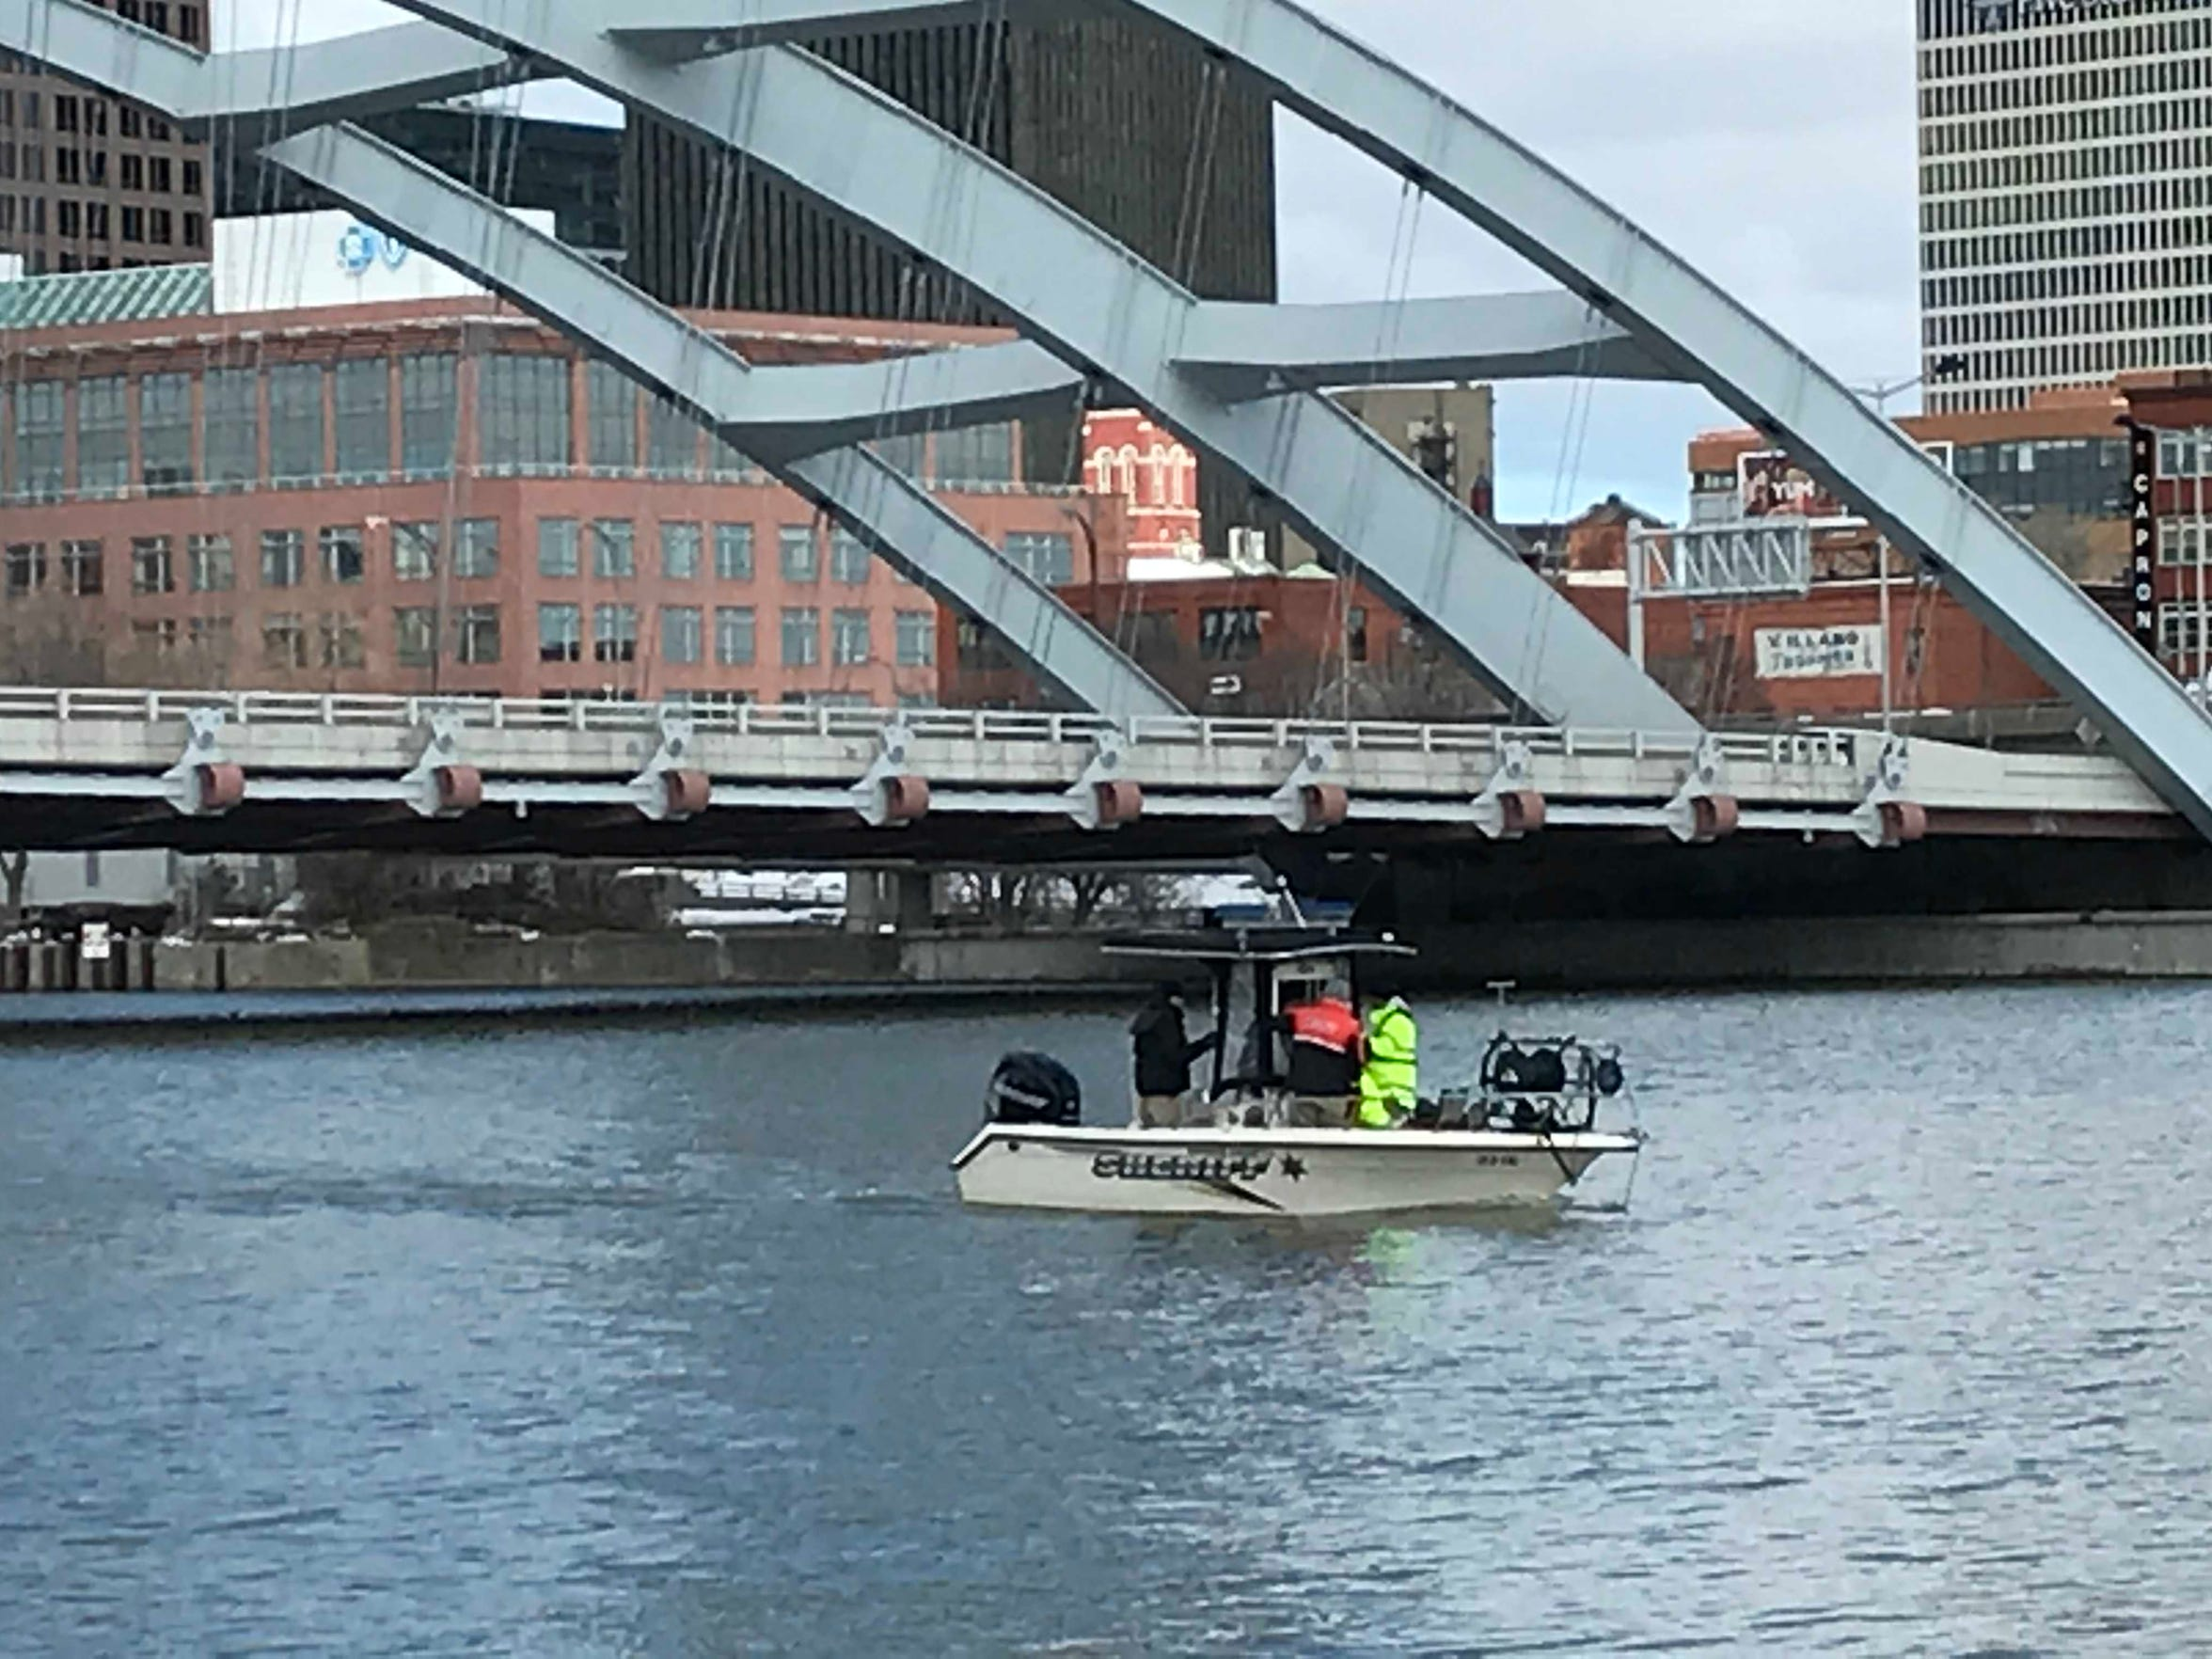 A watercraft from the Monroe County Sheriff on the Genesee River, March 13, 2018 as part of the search for missing teen Trevyan Rowe.